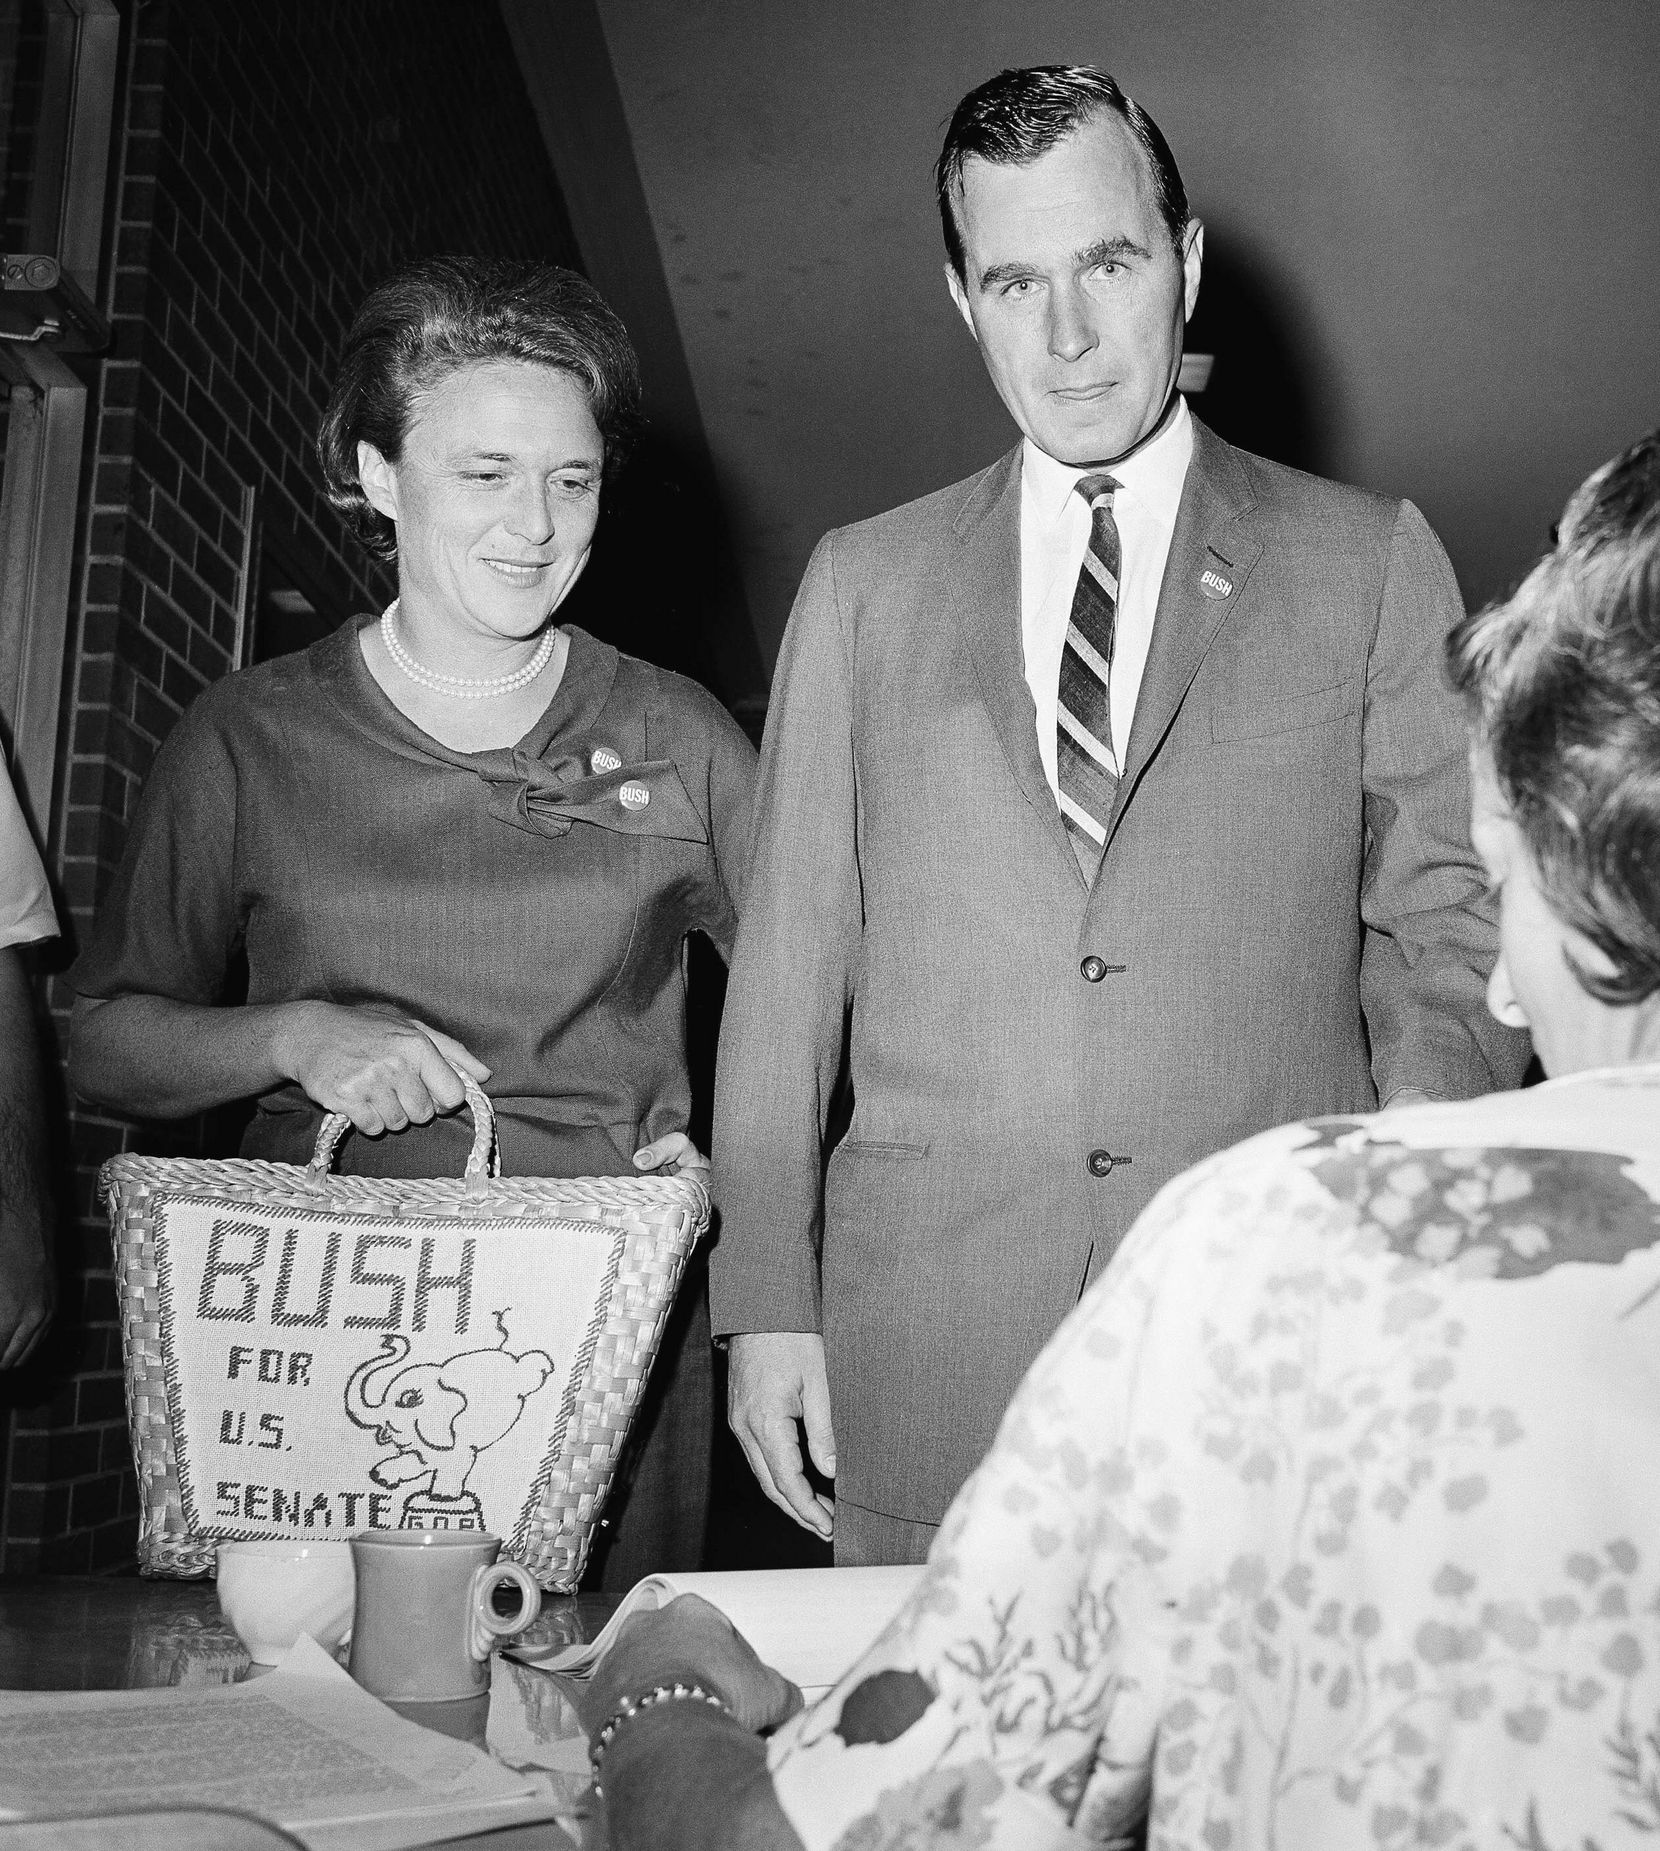 1964: George Bush and his wife, Barbara, cast their votes in Houston for the U.S. Senate primary race in Texas, his entry into politics. Bush was seeking the Republican primary victory over opponent Jack Cox, and went on to lose to Democratic Sen. Ralph Yarborough in the November general election.